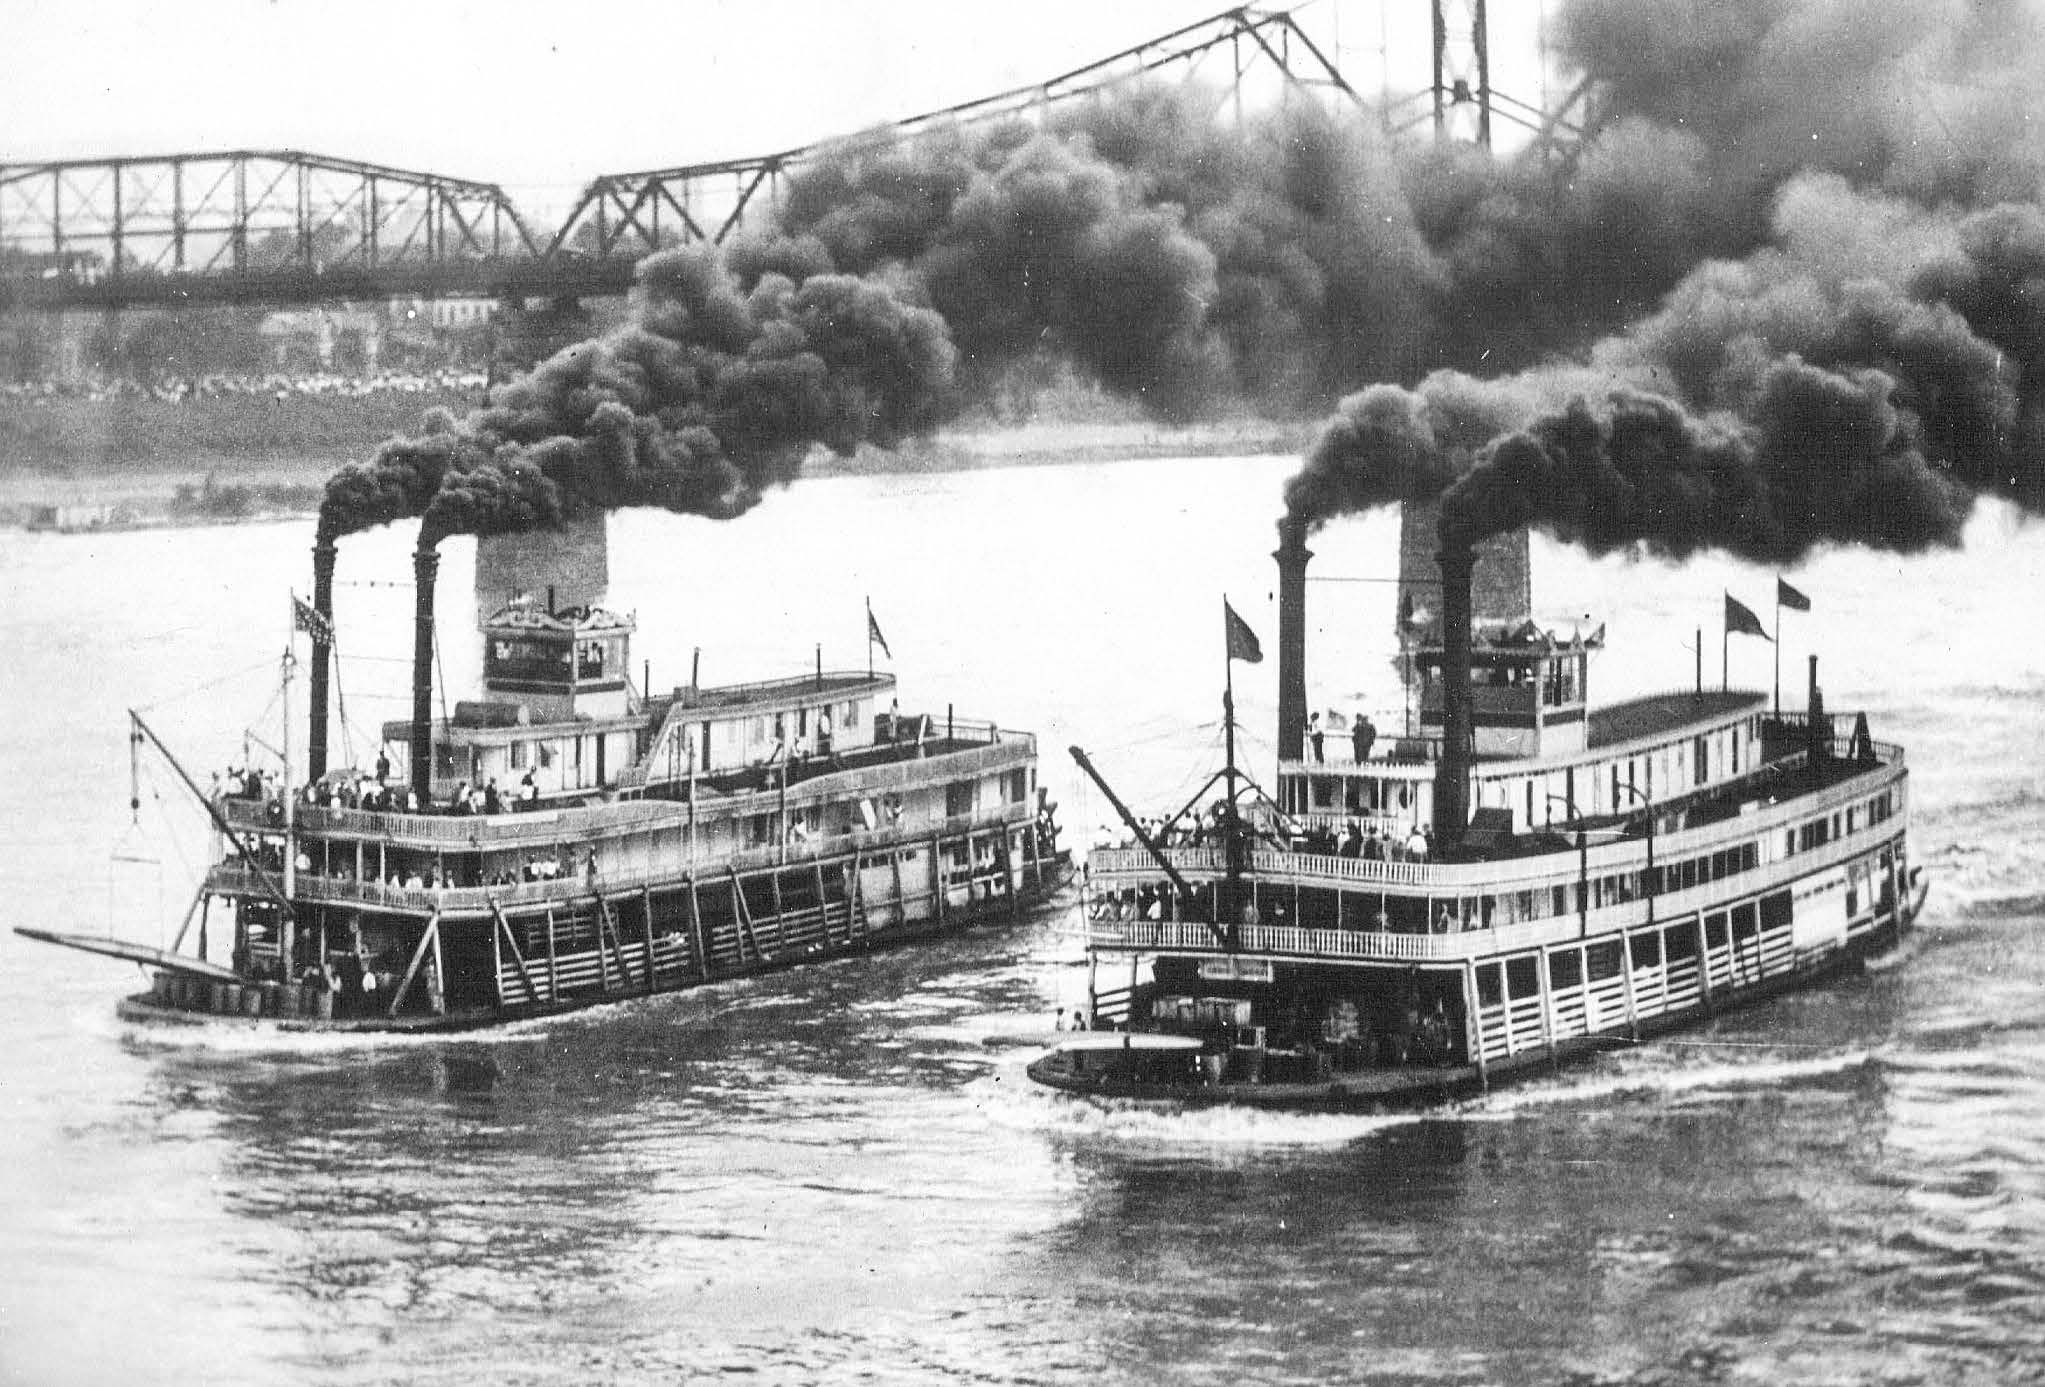 The Betsy Ann And Chris Greene Raced 93 Years Ago